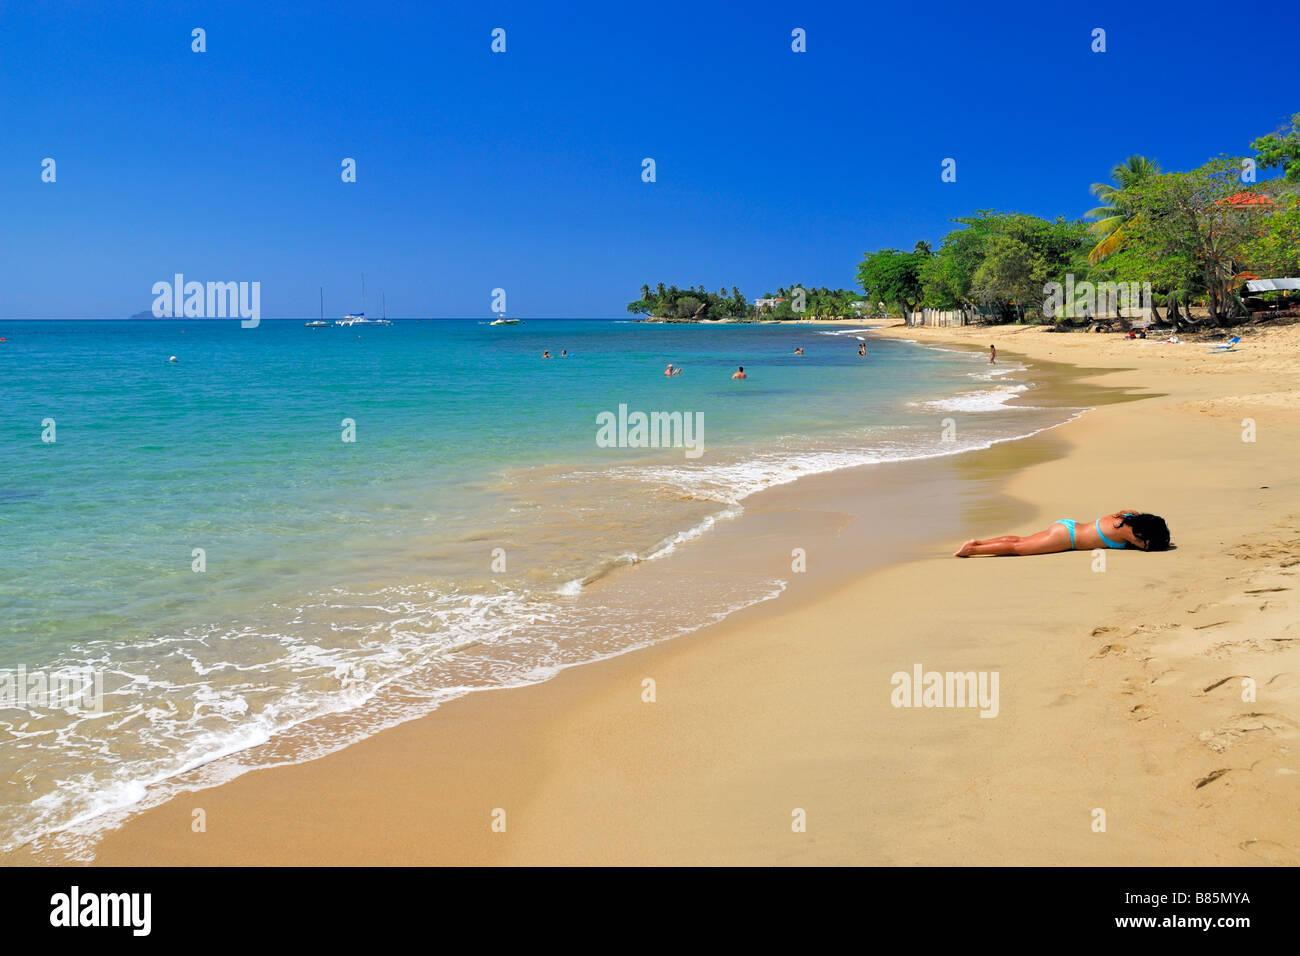 A woman is sun bathing at the beautiful rincn beach in rincn stock a woman is sun bathing at the beautiful rincn beach in rincn western puerto rico publicscrutiny Image collections